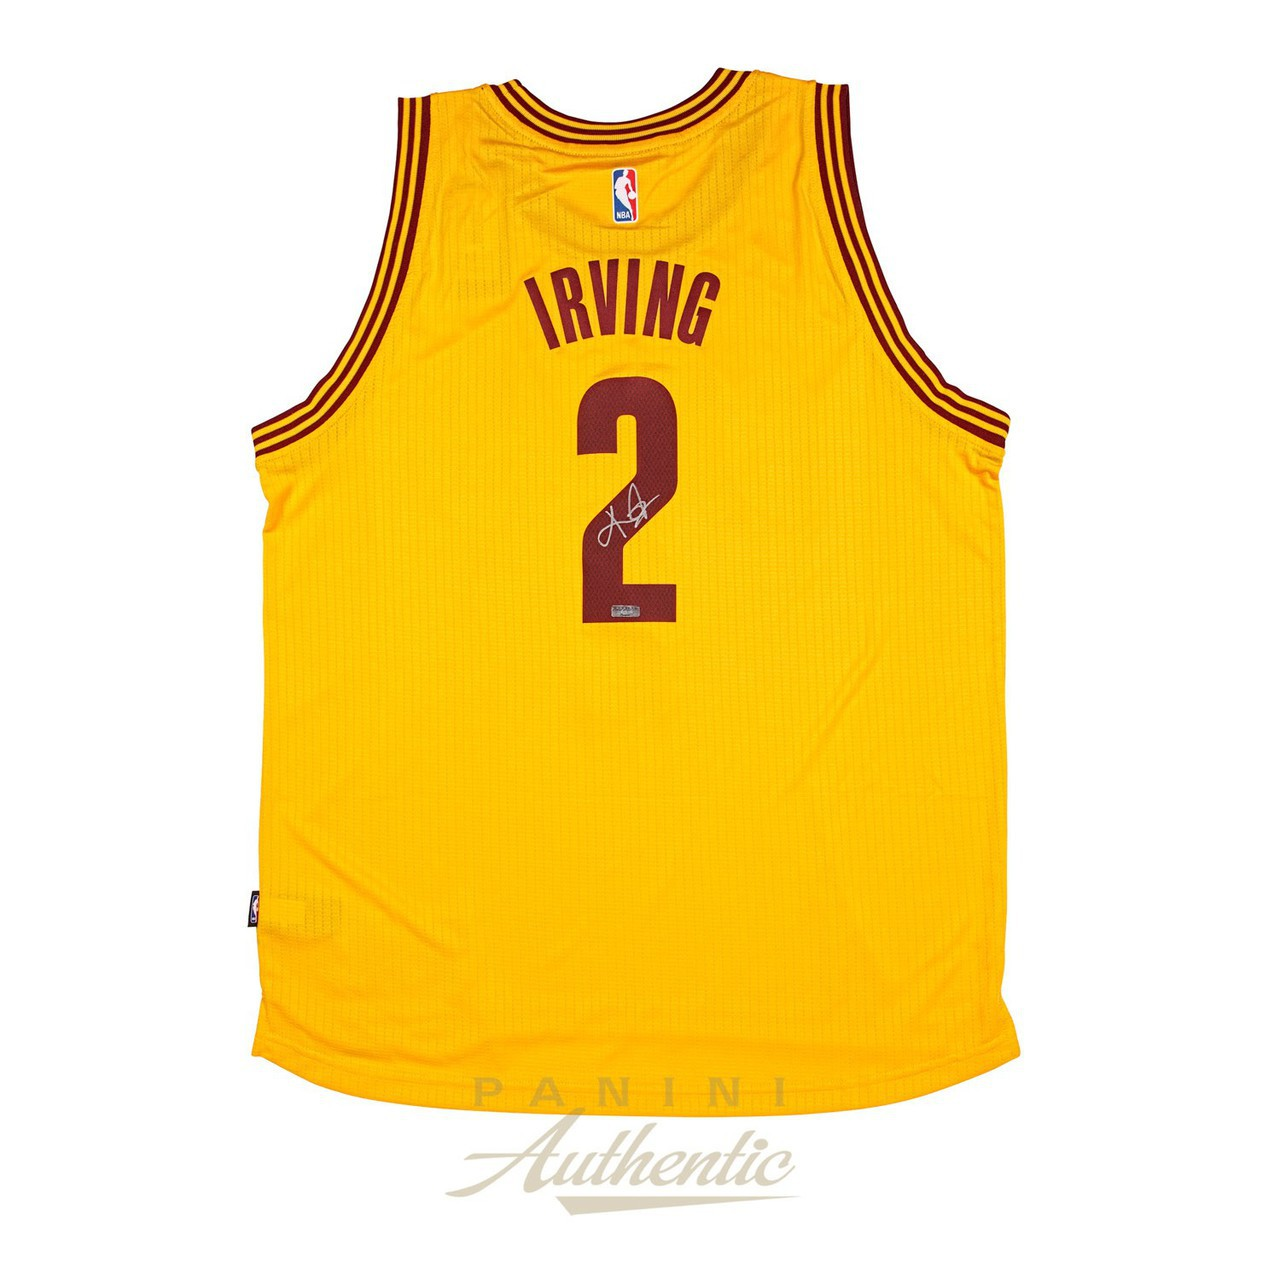 low priced 186a7 c74d3 Kyrie Irving Signed Cleveland Cavaliers Yellow Jersey